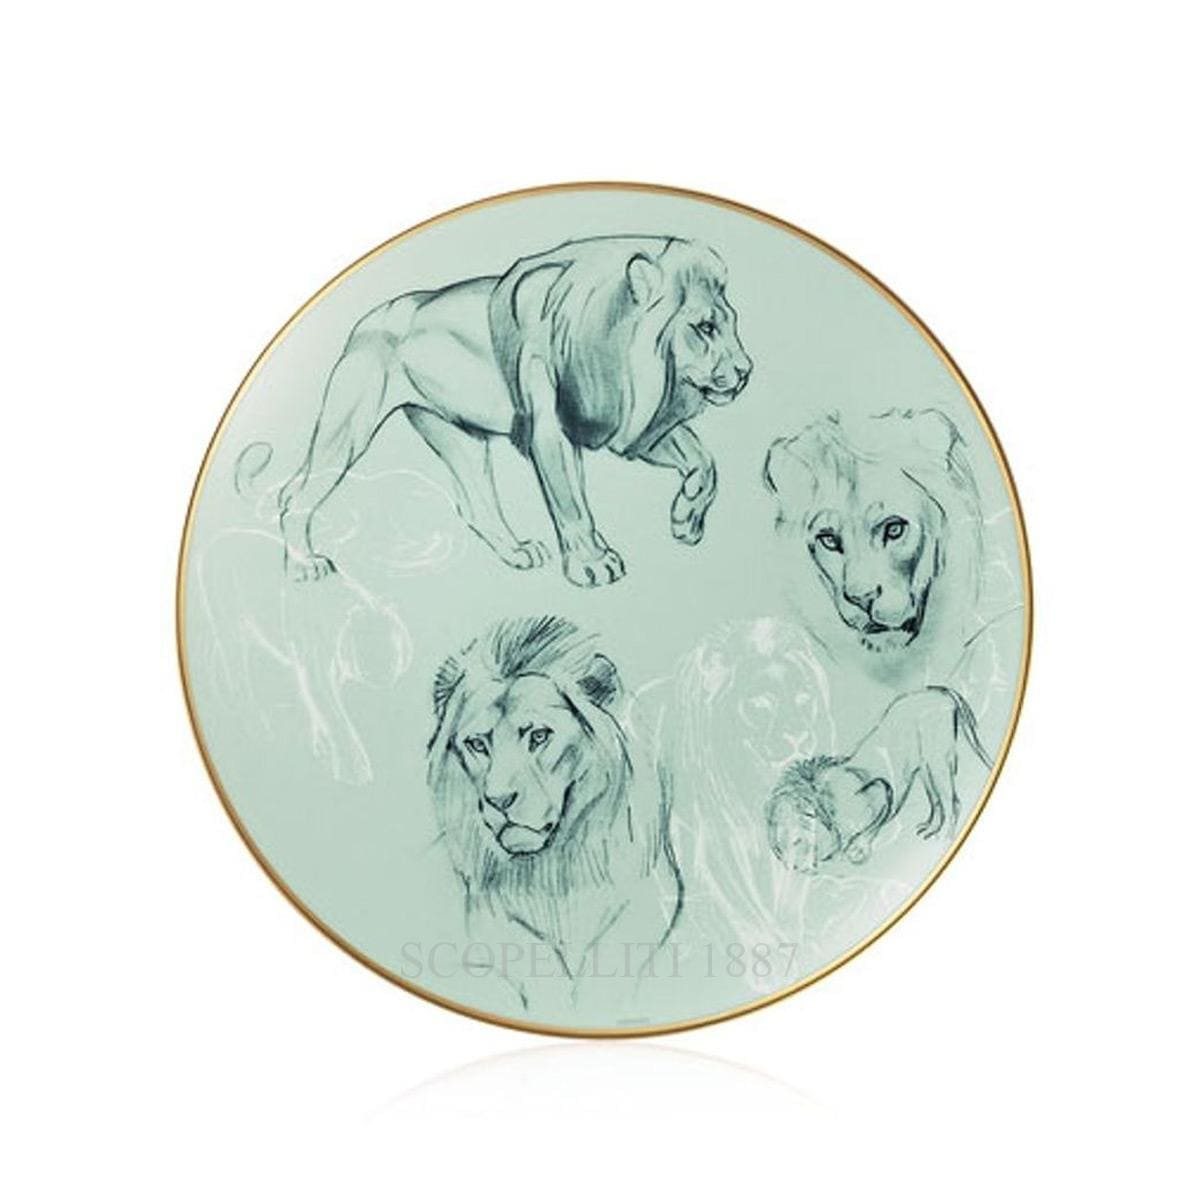 hermes paris carnets equateur bread and butter plate lions theme